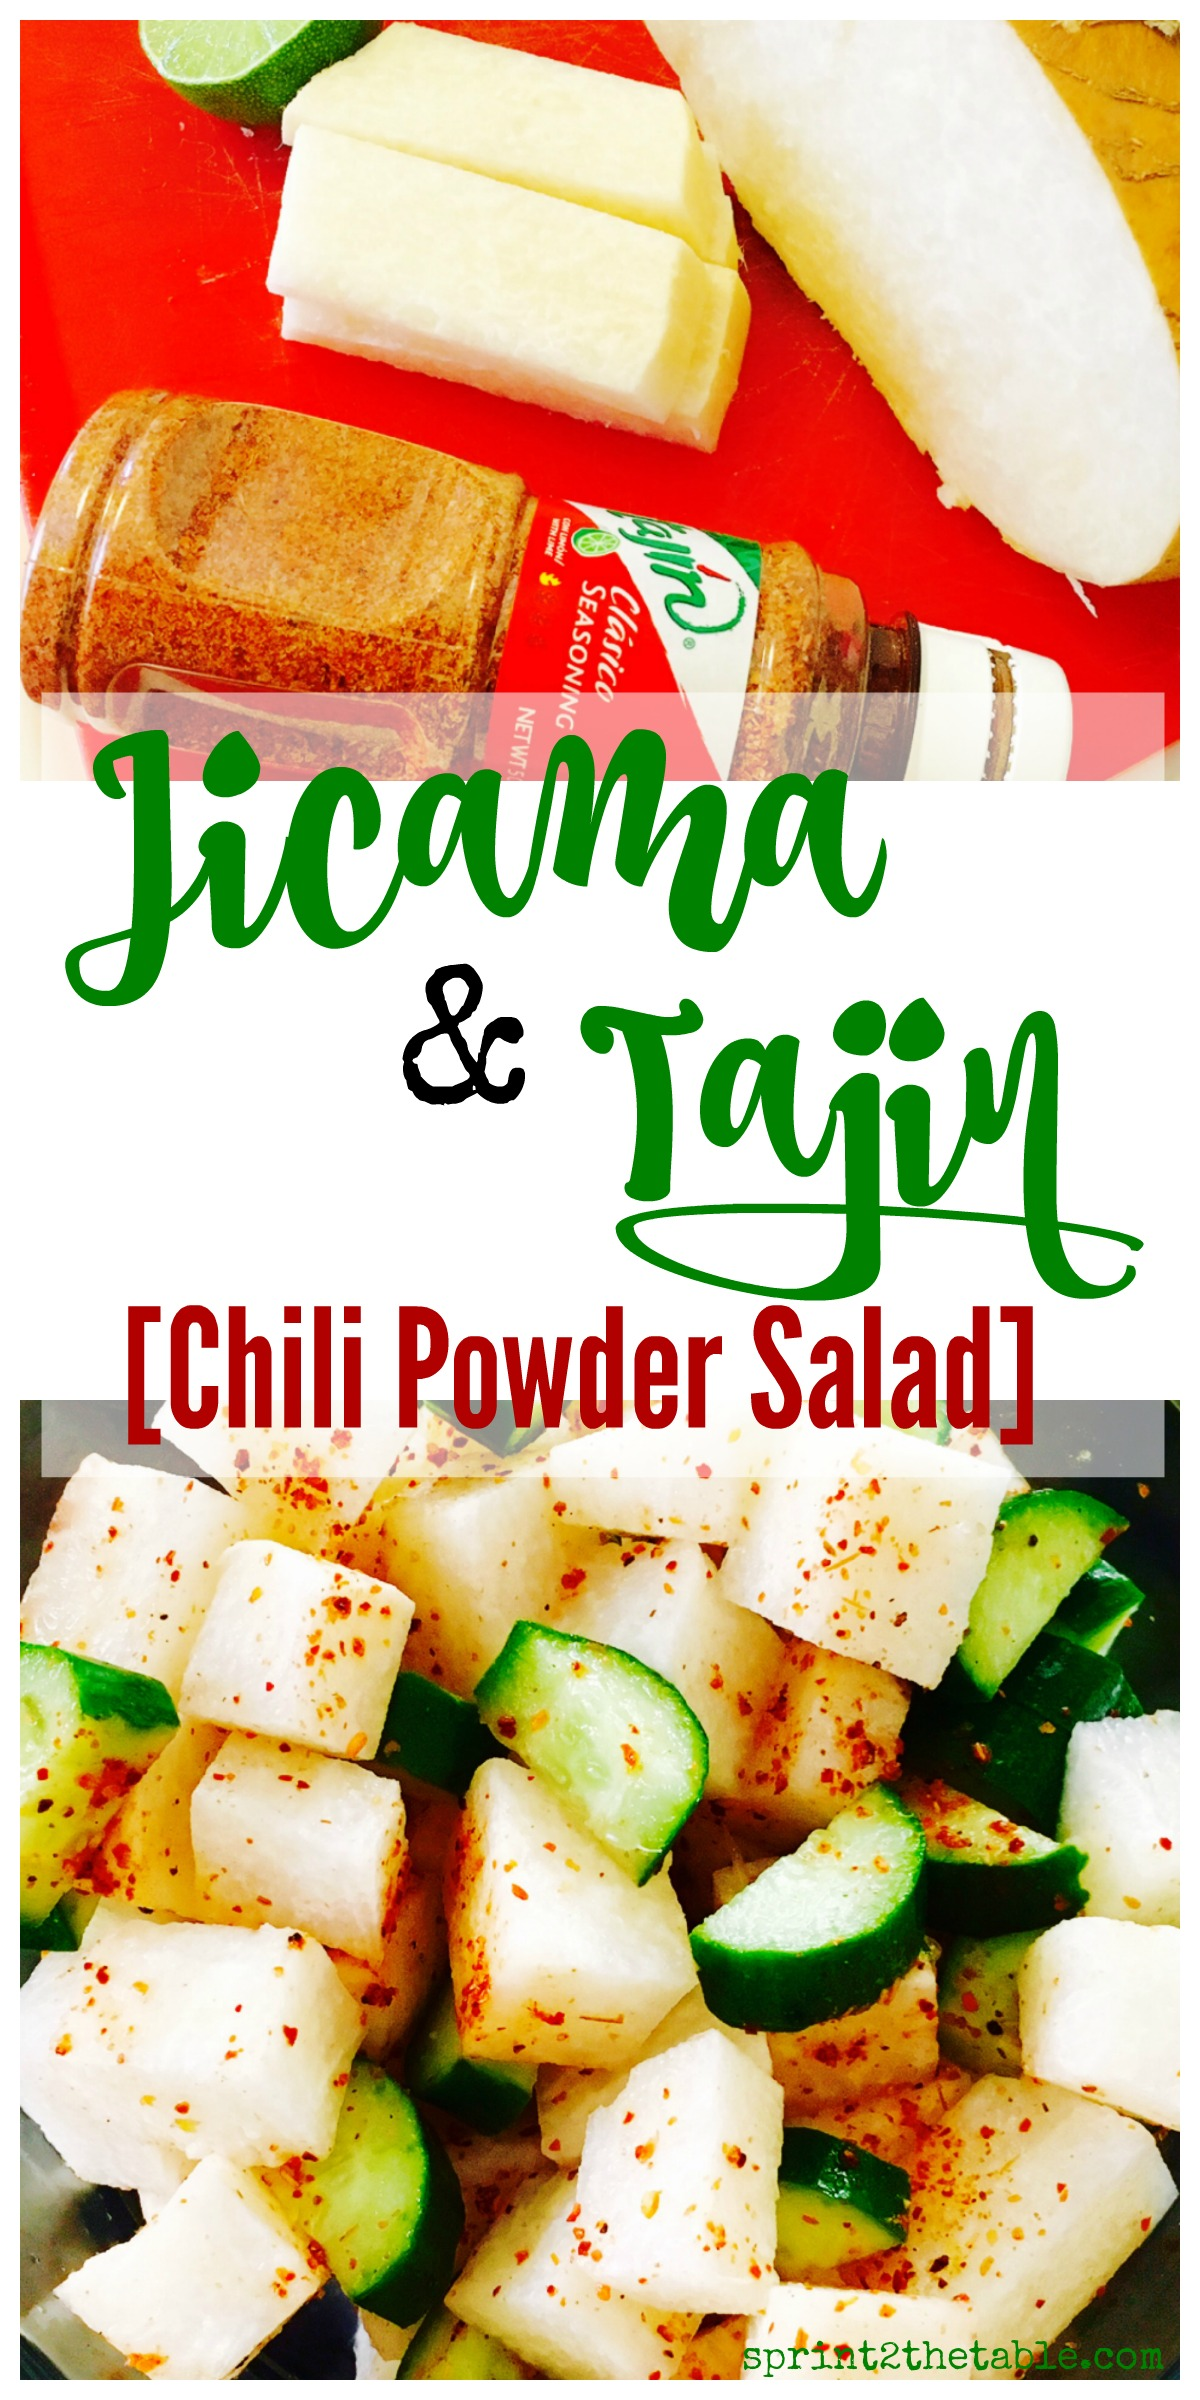 jicama-tajin-chili-powder-salad-quick-and-easy-side-or-snack